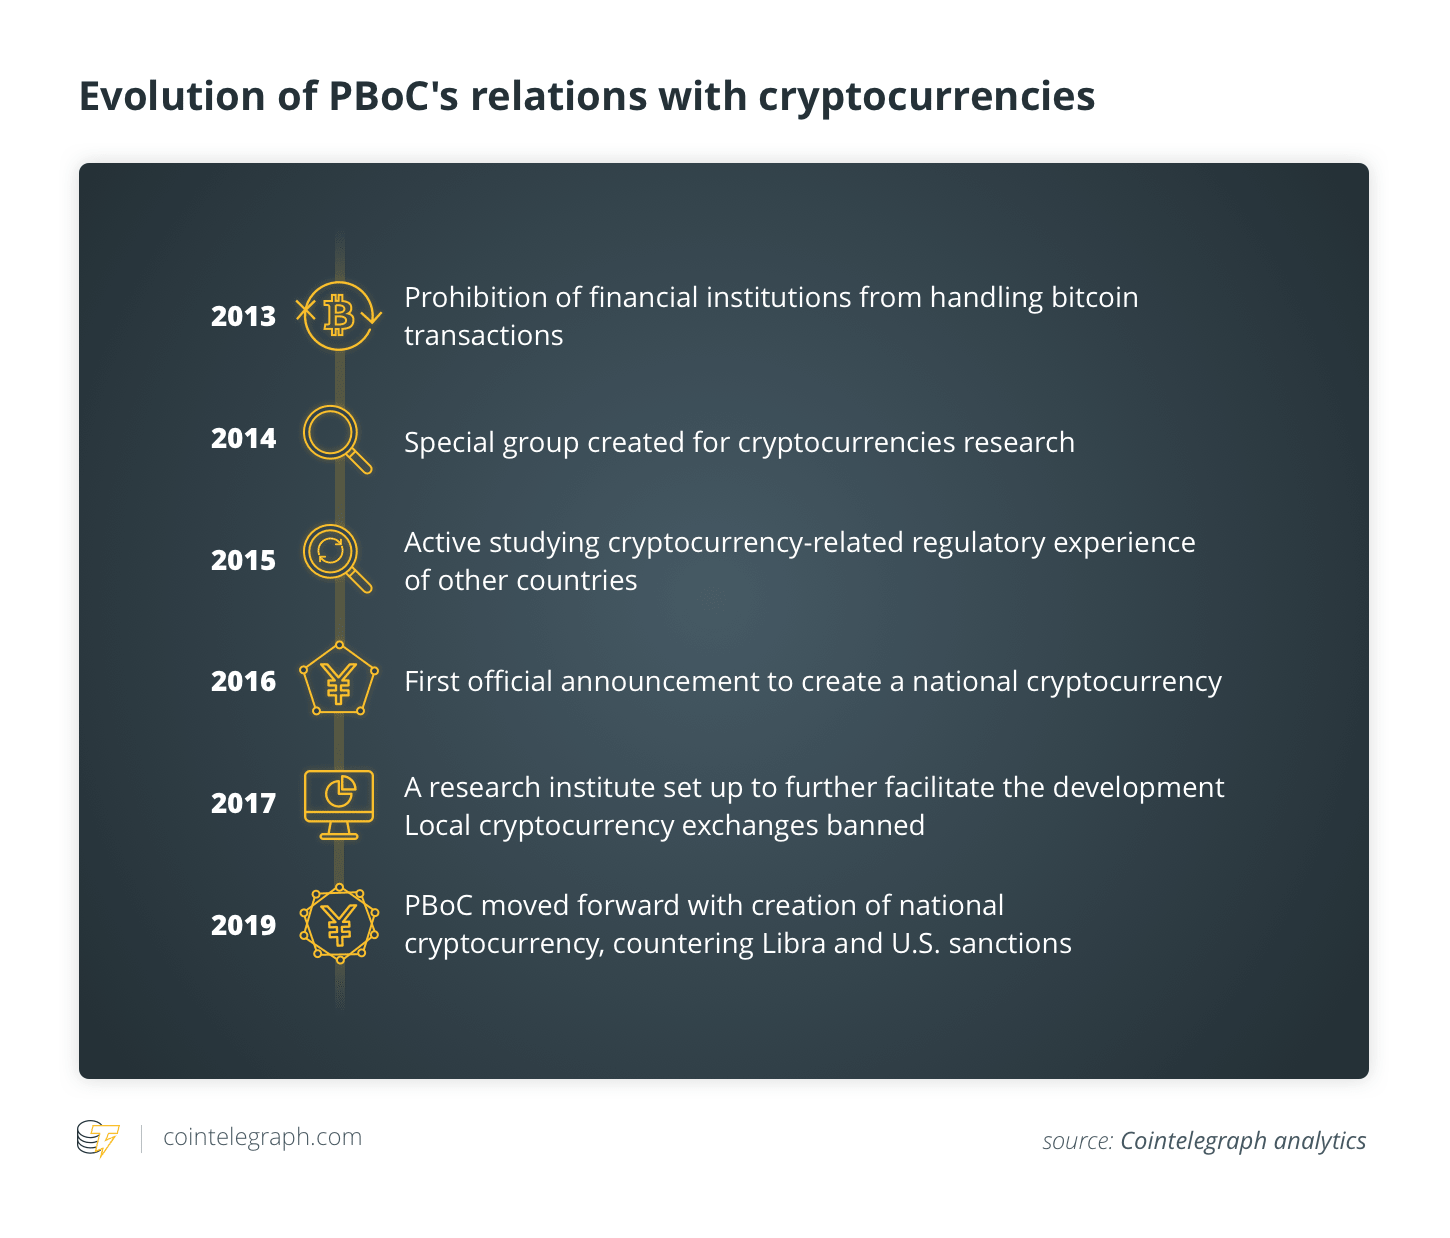 Evolution of PBoC's relations with cryptocurrencies